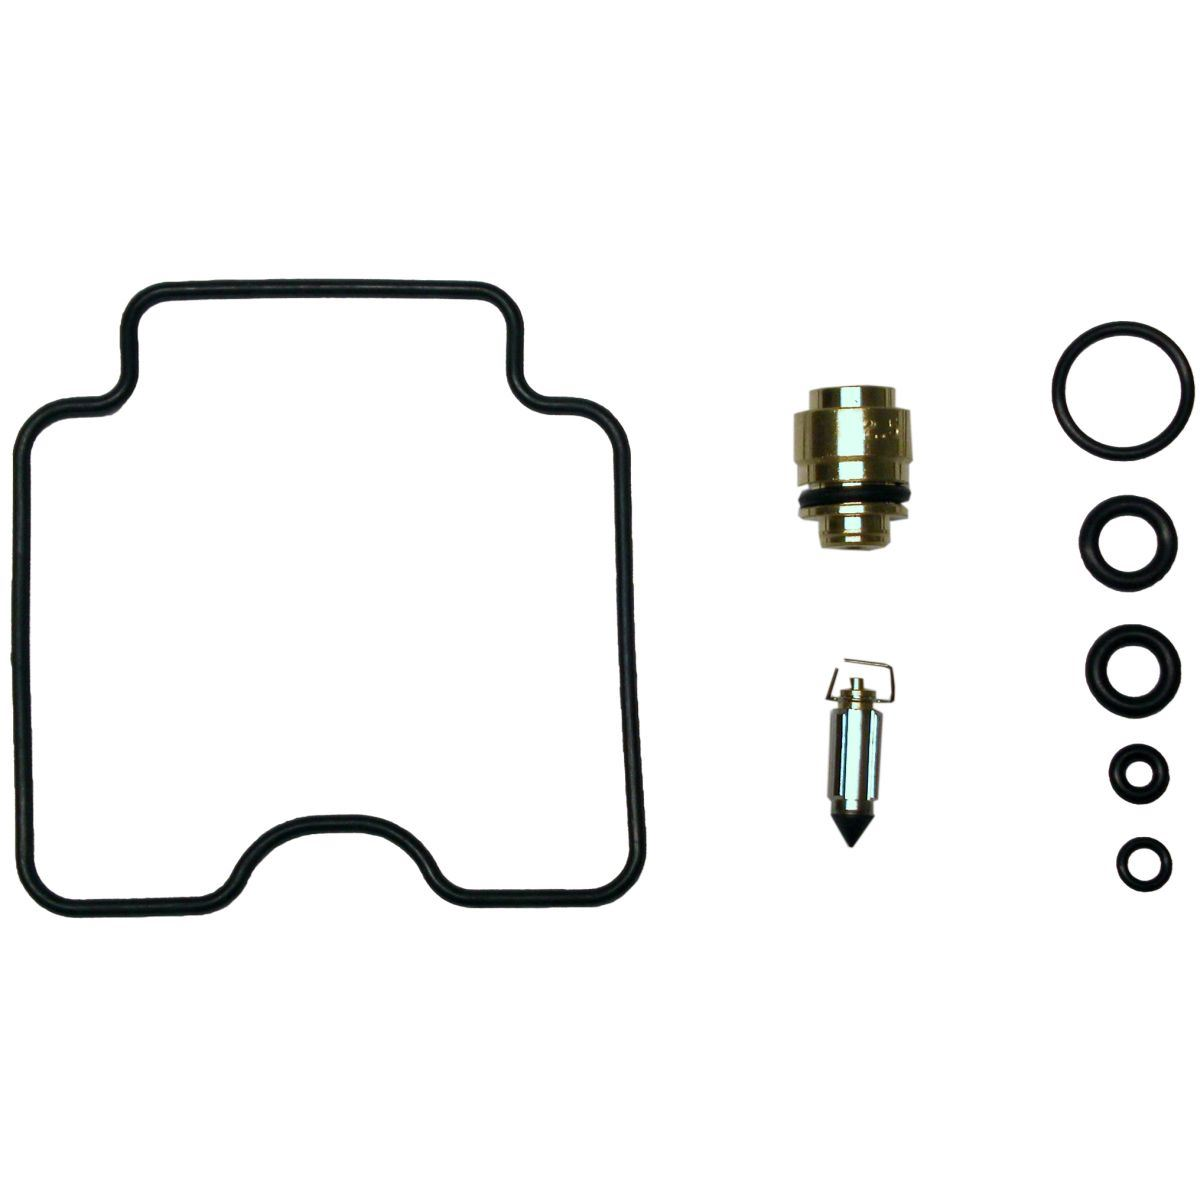 Carb Repair Kit for 2003 Suzuki GSX 750 F-K3 (Fully Faired